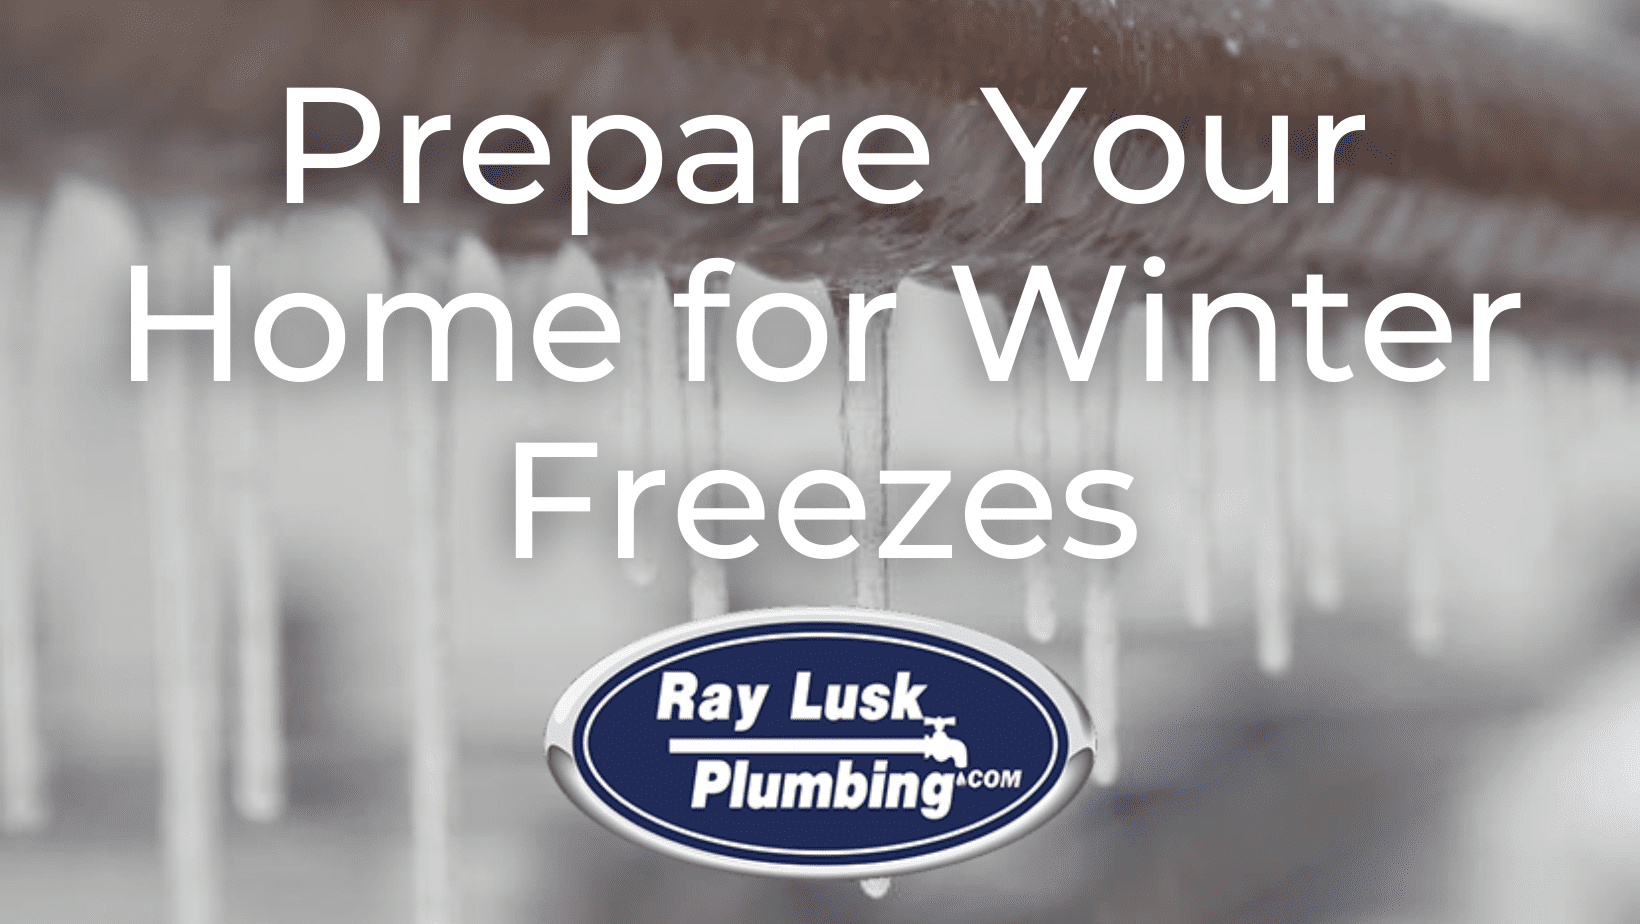 Image text reads: Prepare Your Home for Winter Freezes